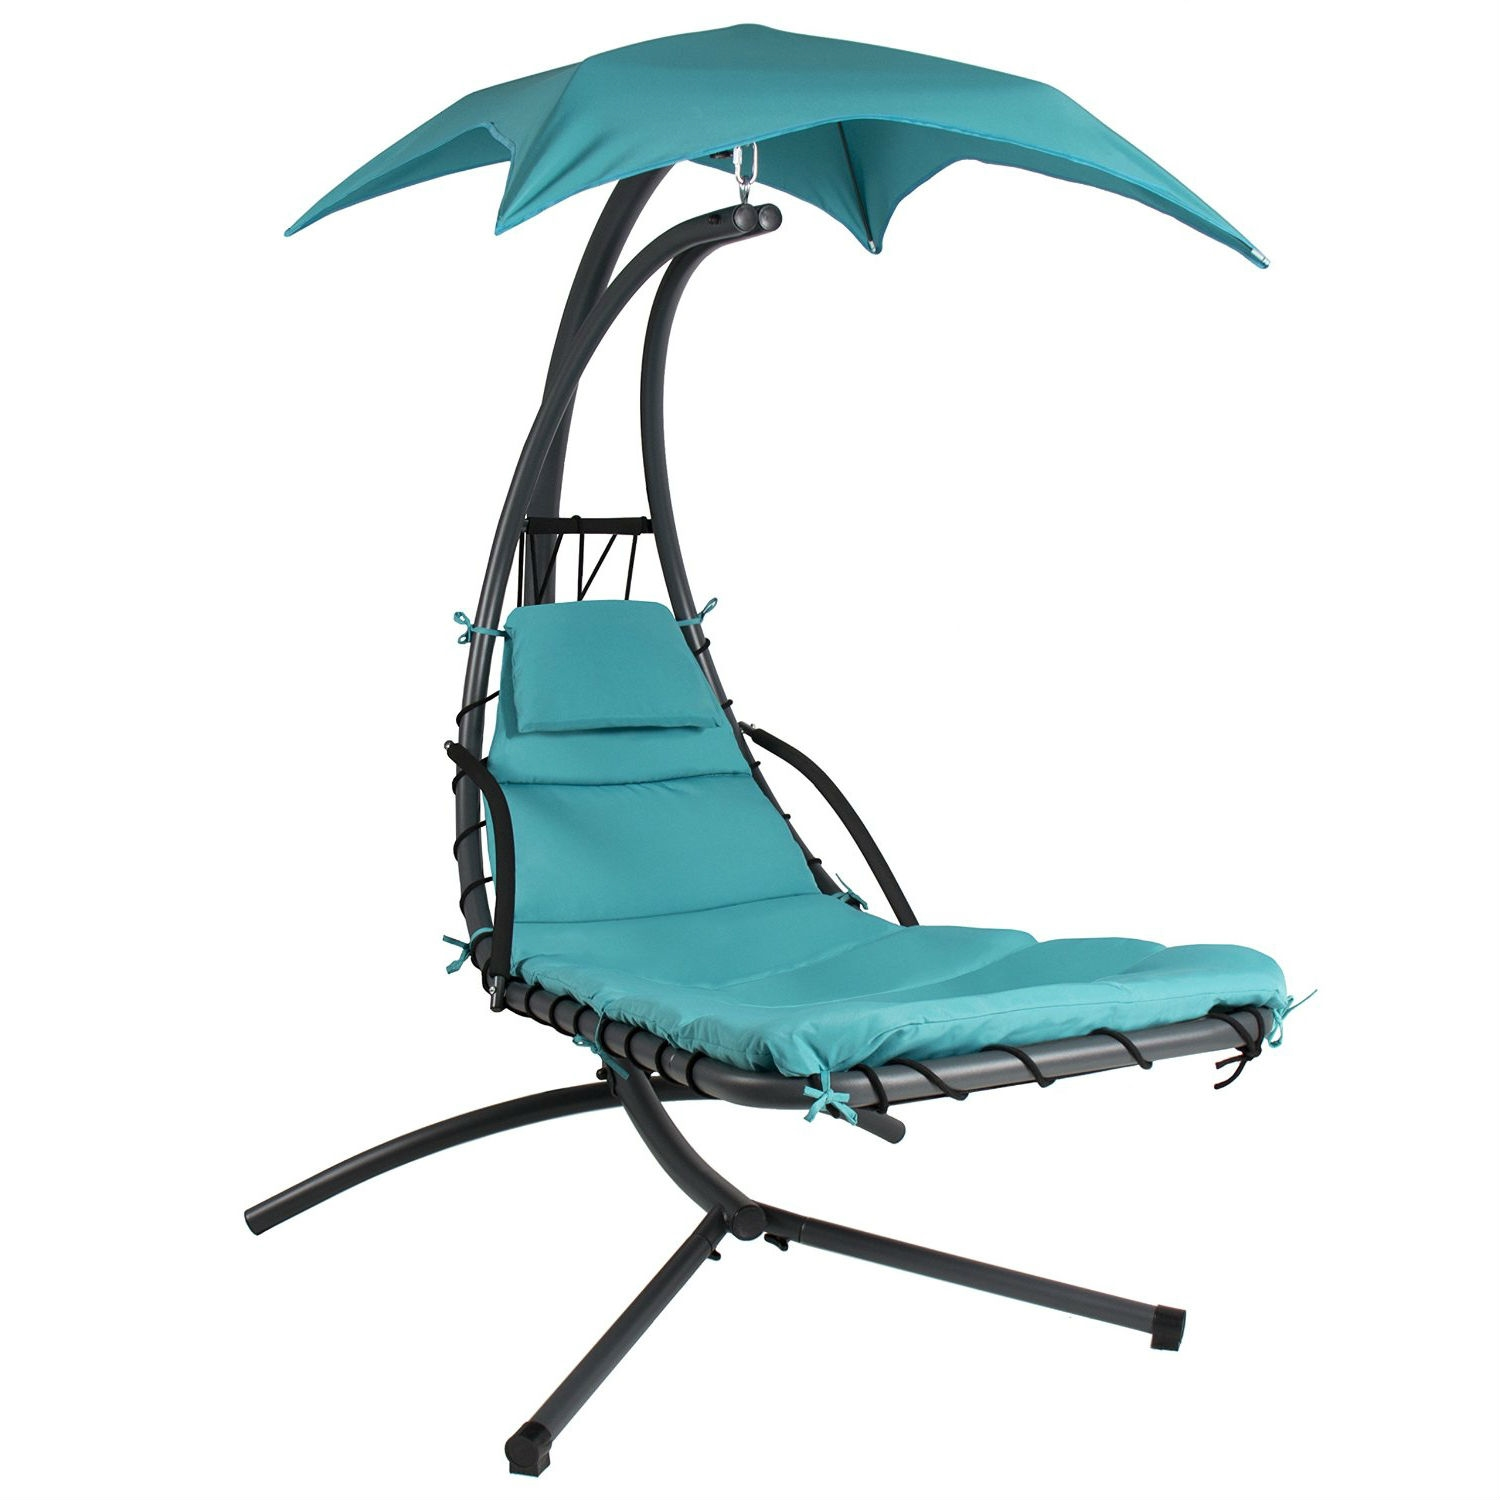 Phenomenal Teal Single Person Sturdy Modern Chaise Lounger Hammock Chair Porch Swing Inzonedesignstudio Interior Chair Design Inzonedesignstudiocom